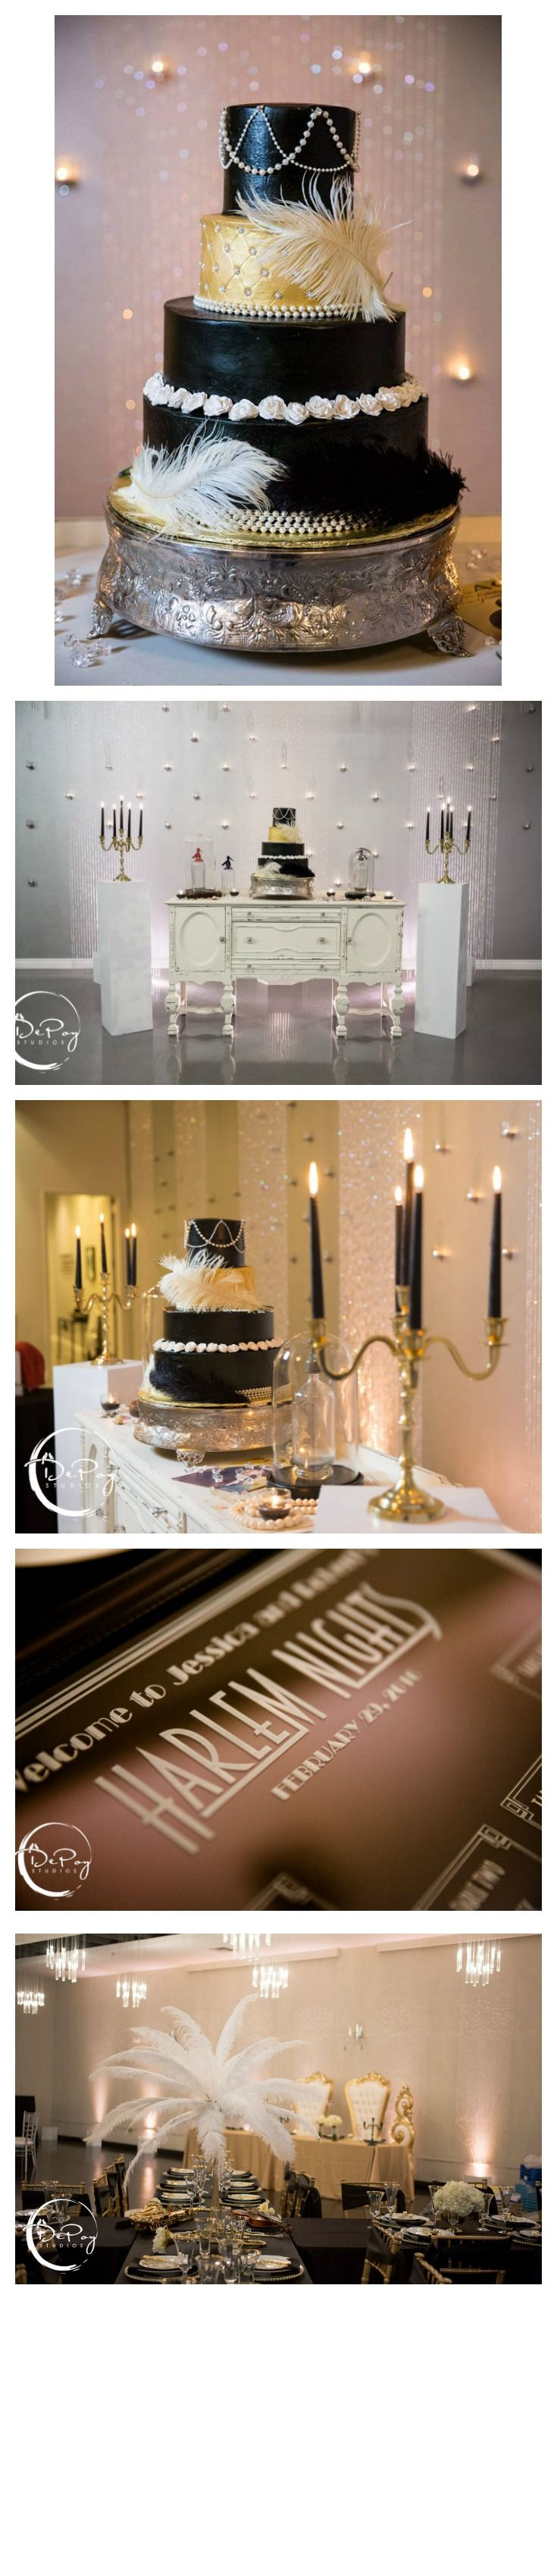 Rent ostrich feather centerpieces wedding amp party centerpiece rentals - These Photos From The Harlem Night Themed Wedding Are Gorgeous Our Ornate Baroque Statement Pieces